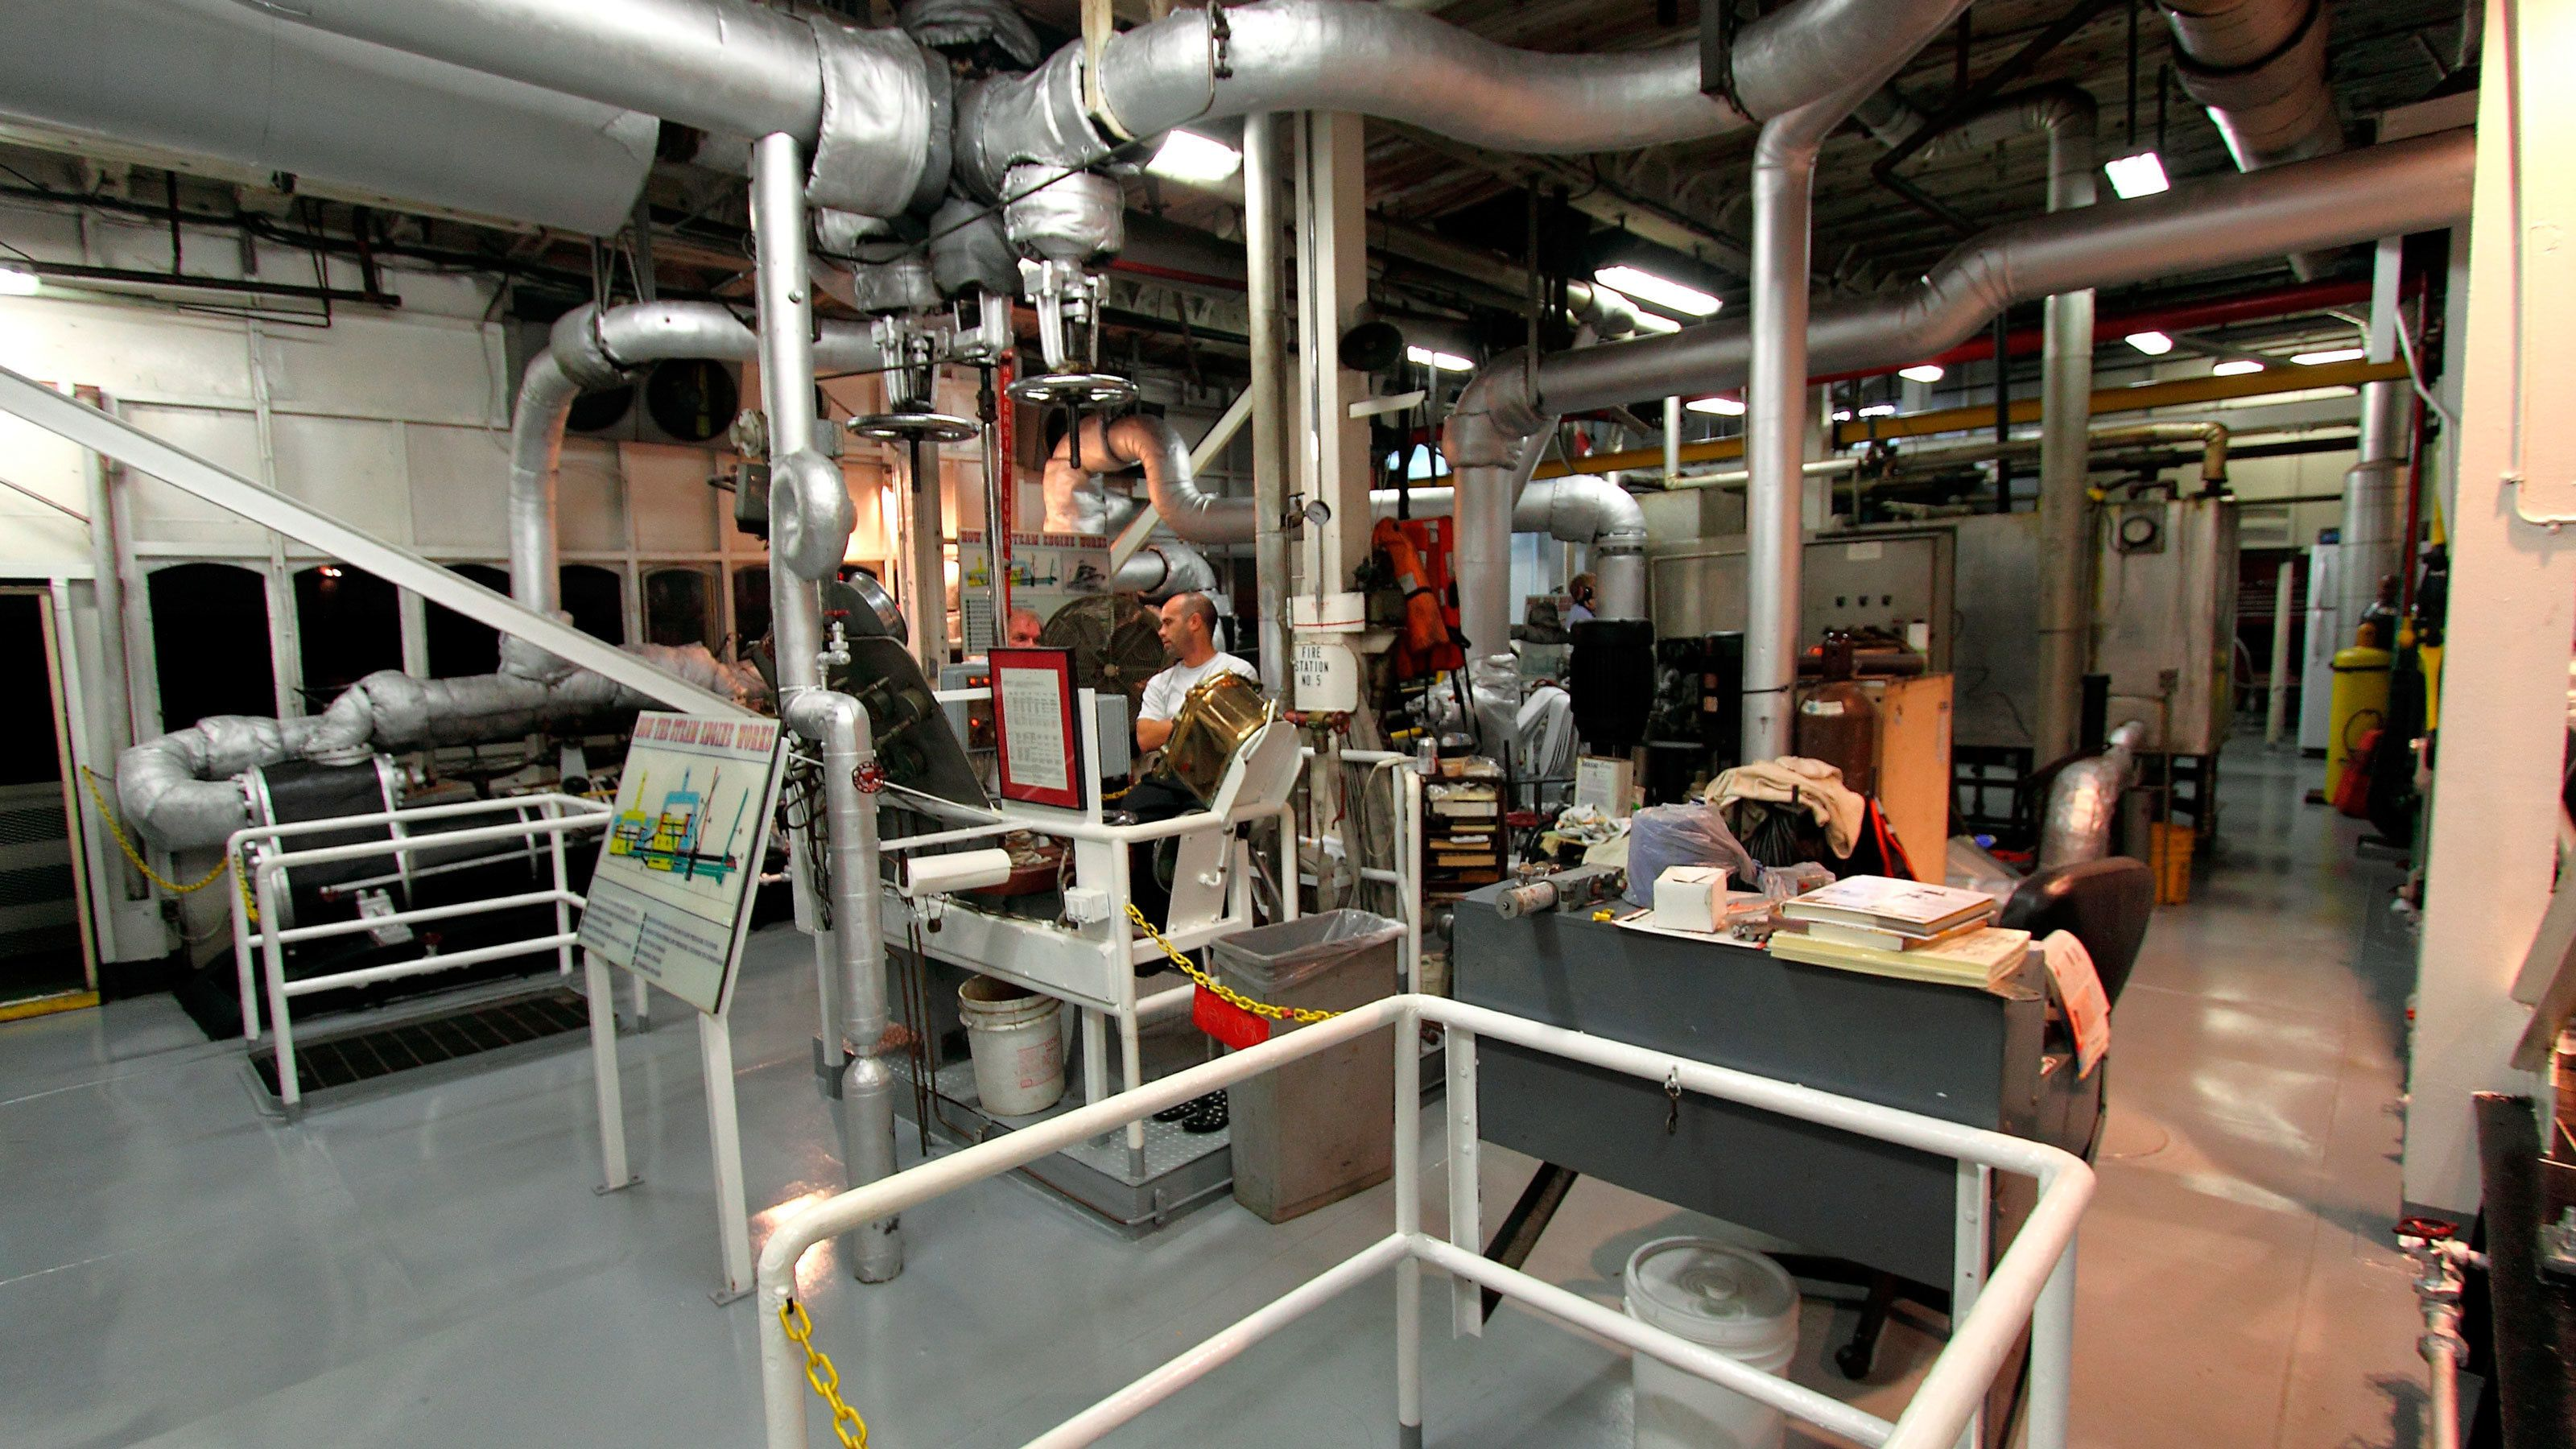 engine room aboard steamboat tour in New Orleans